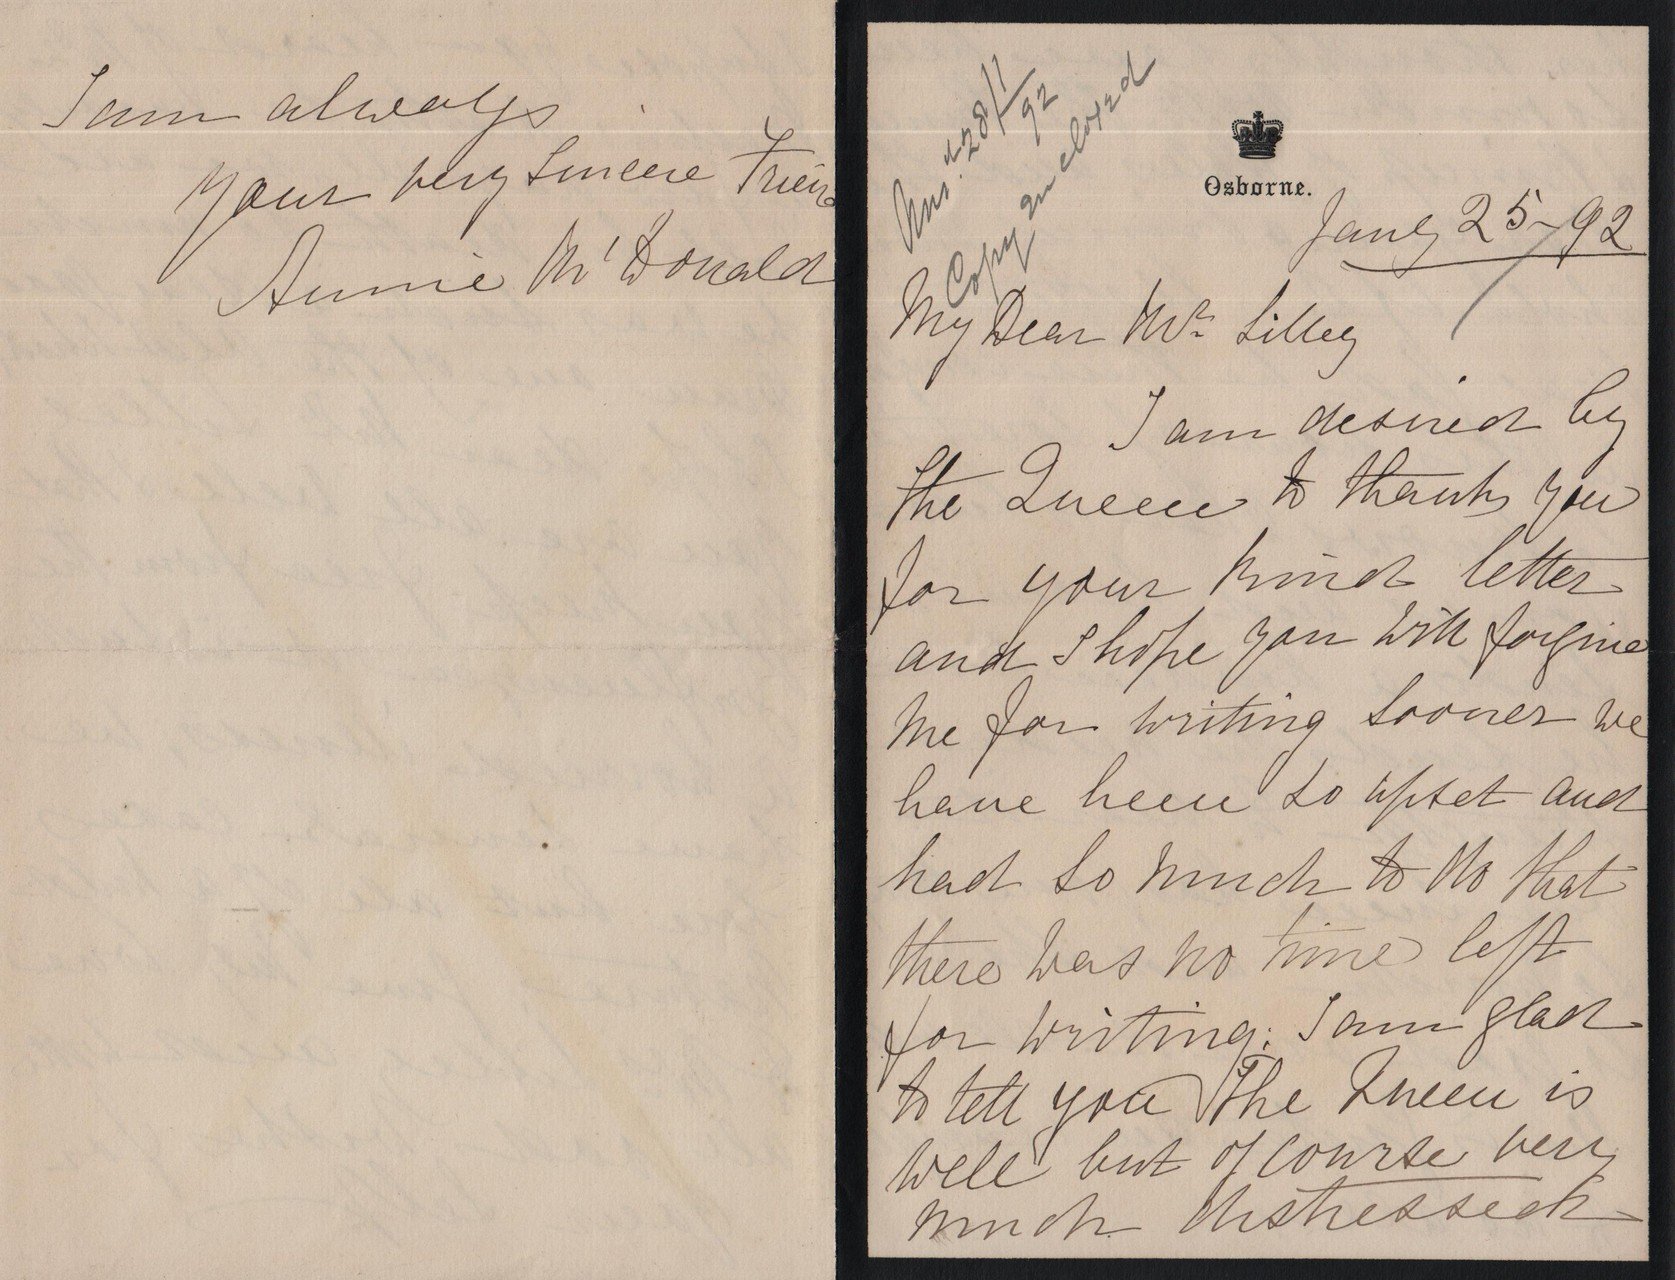 1892 June 25th AMcD to JHL